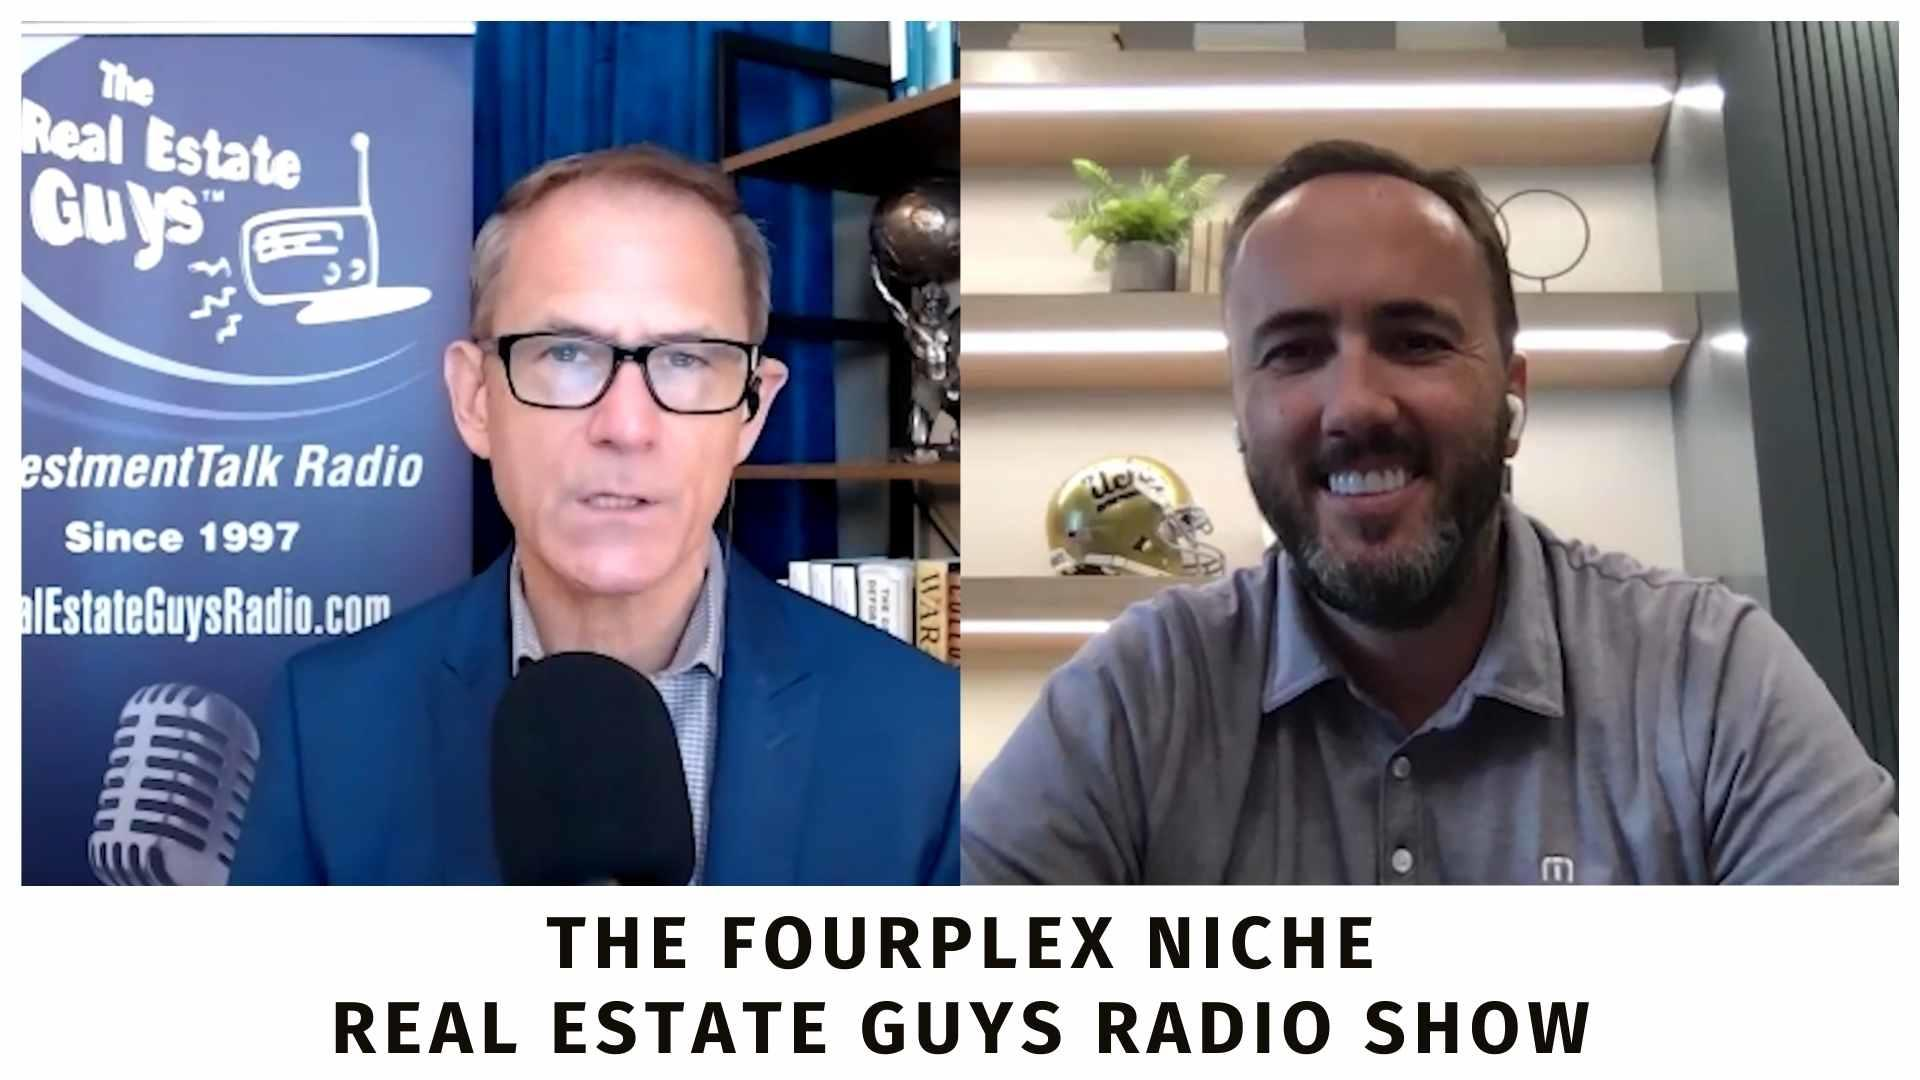 Steve Olson on the Real Estate Guys Radio Show